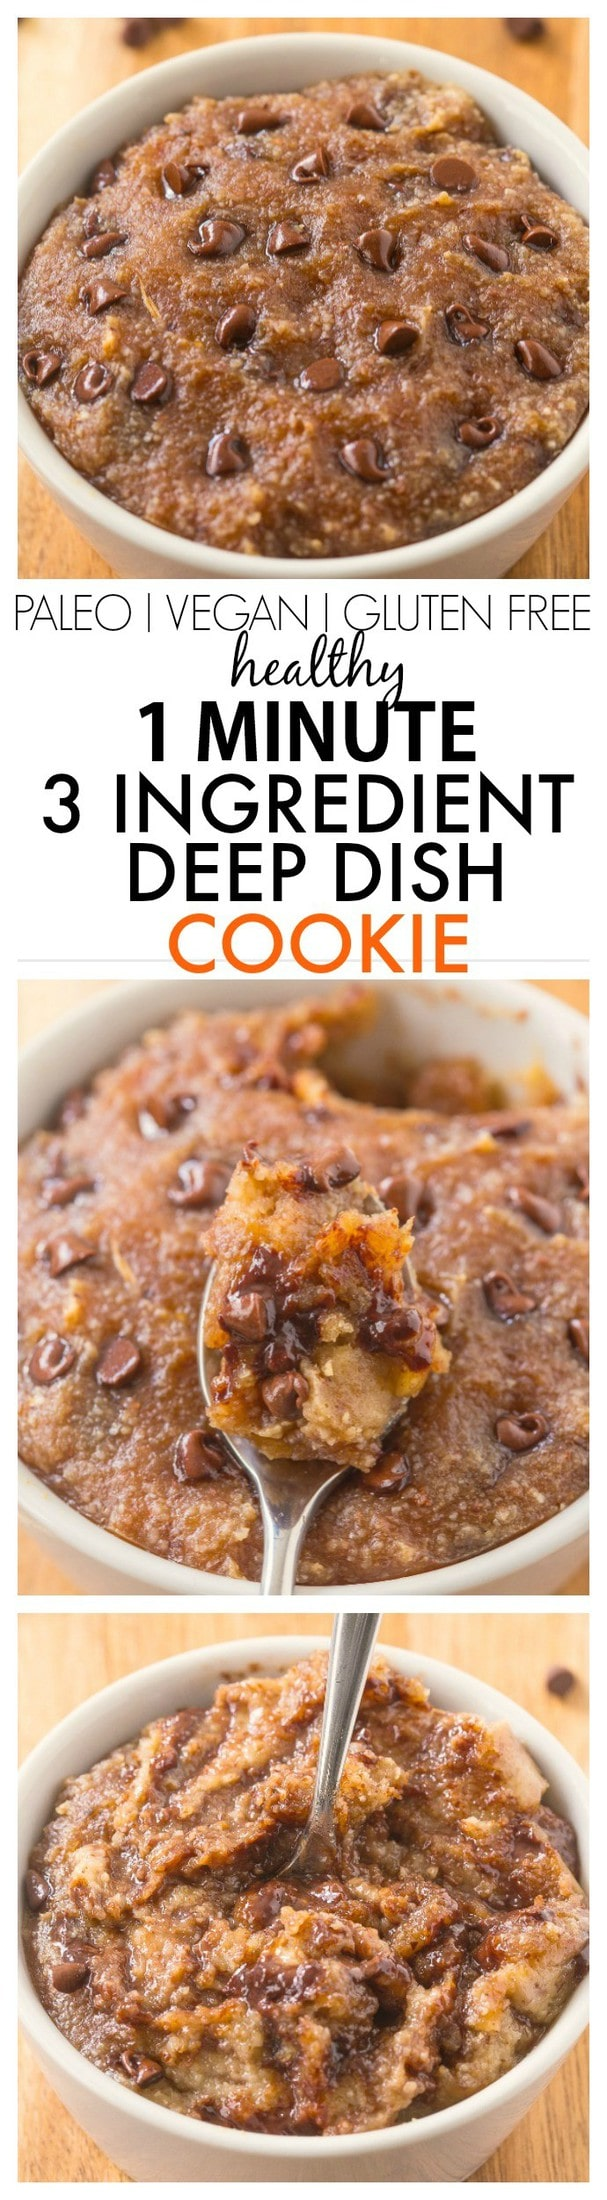 Healthy 3 Ingredient Deep Dish Cookie- SO ooey, gooey and melt in your mouth- Ready in 1 minute with NO butter, oil, grains or sugar! {vegan, gluten free, paleo recipe}- thebigmansworld.com